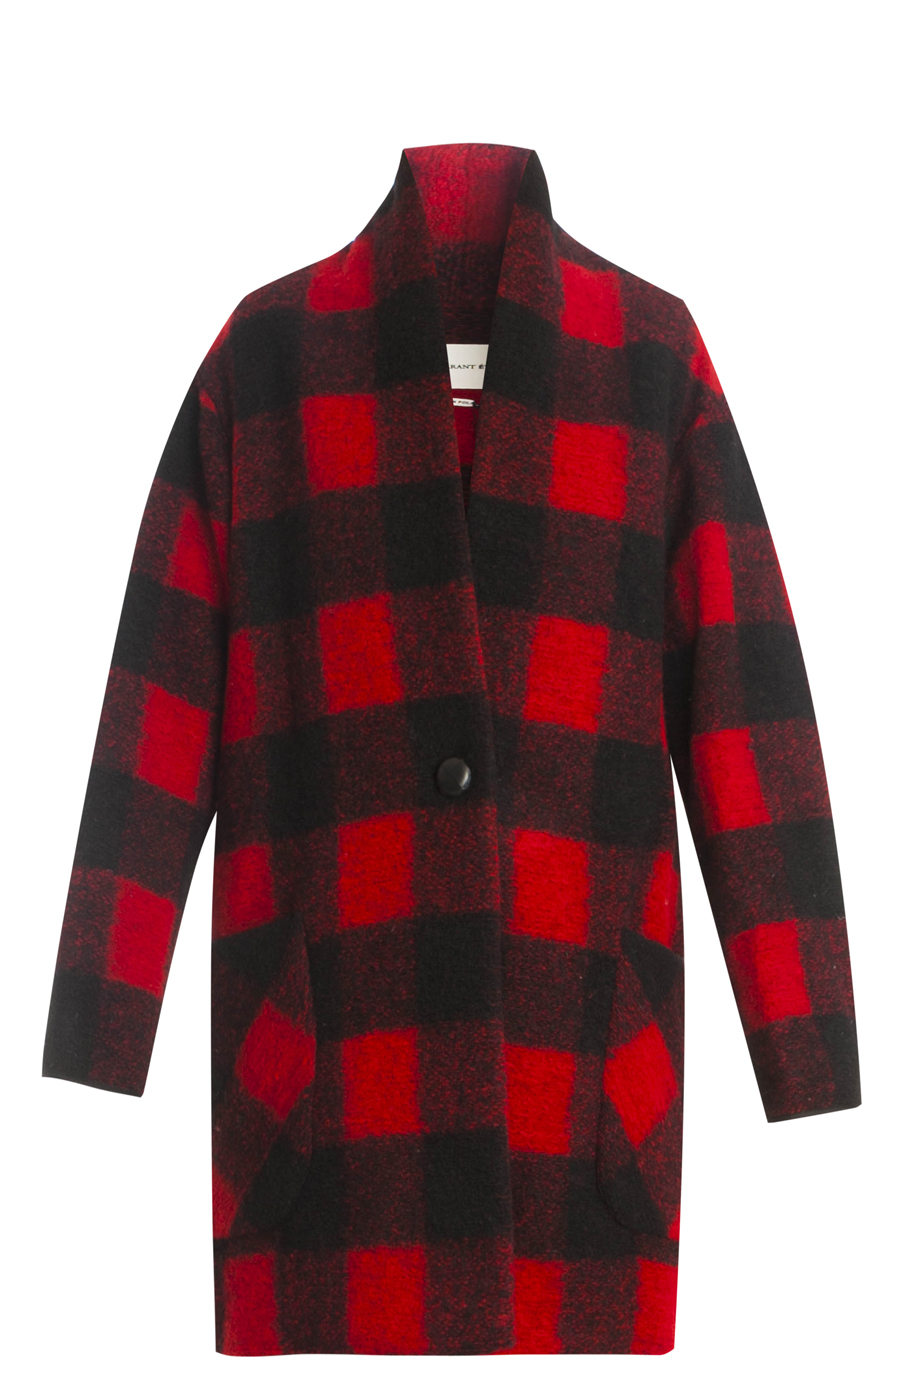 Étoile isabel marant Garbie Check Coat in Red | Lyst